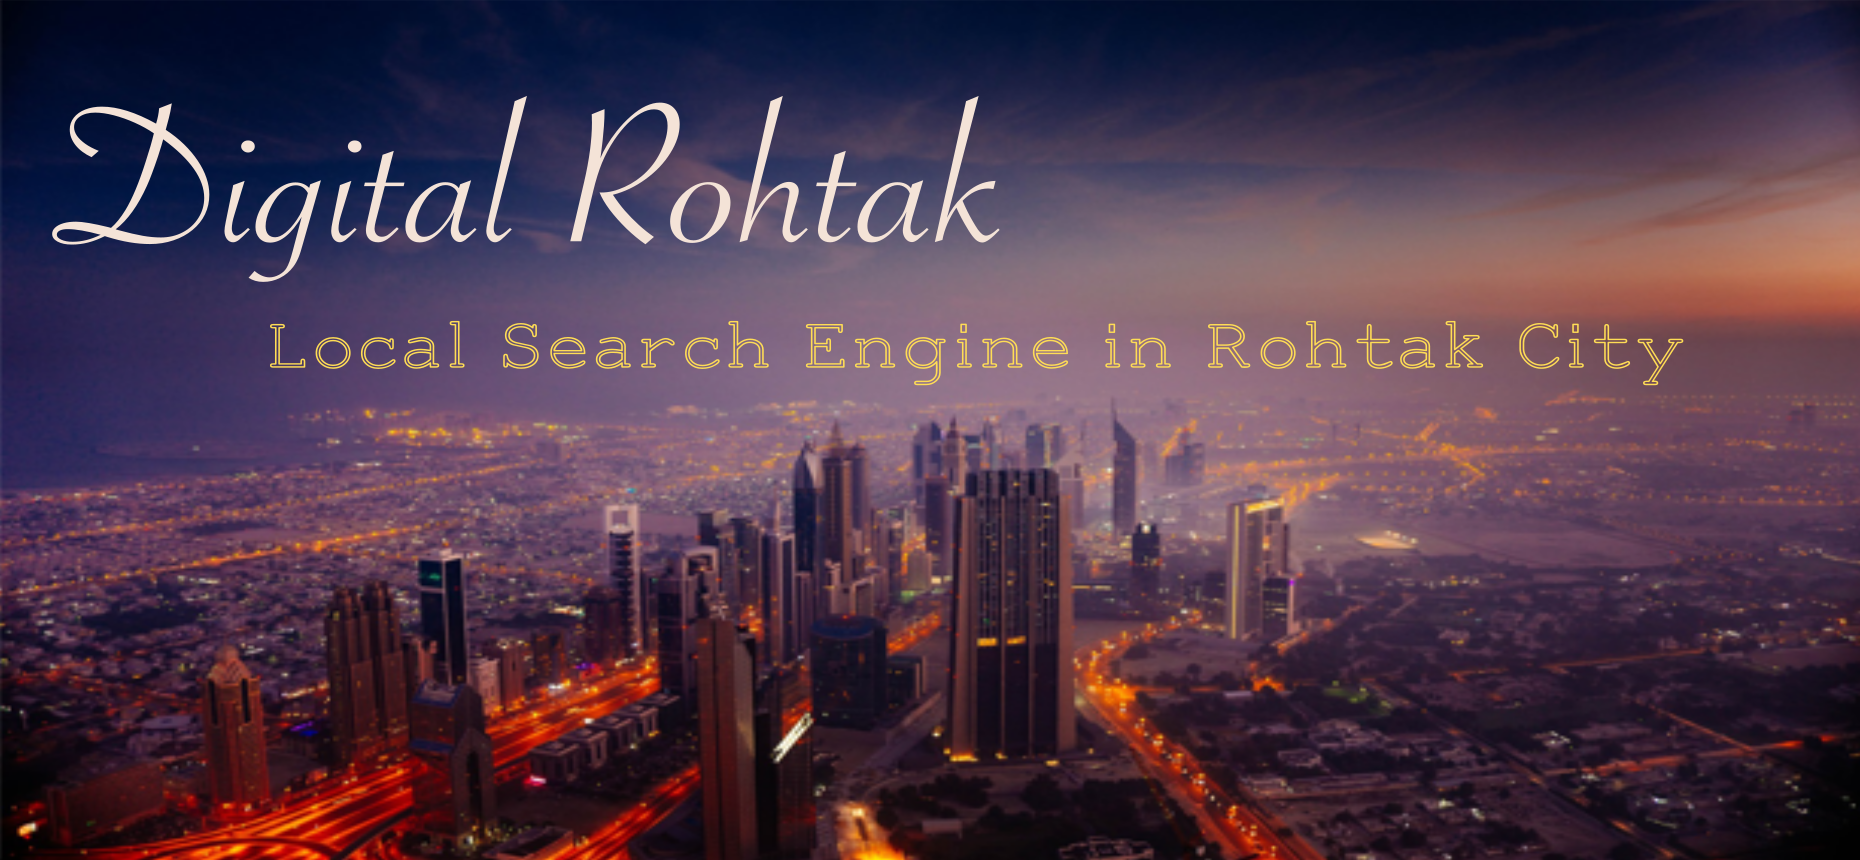 Welcome to Digital Rohtak